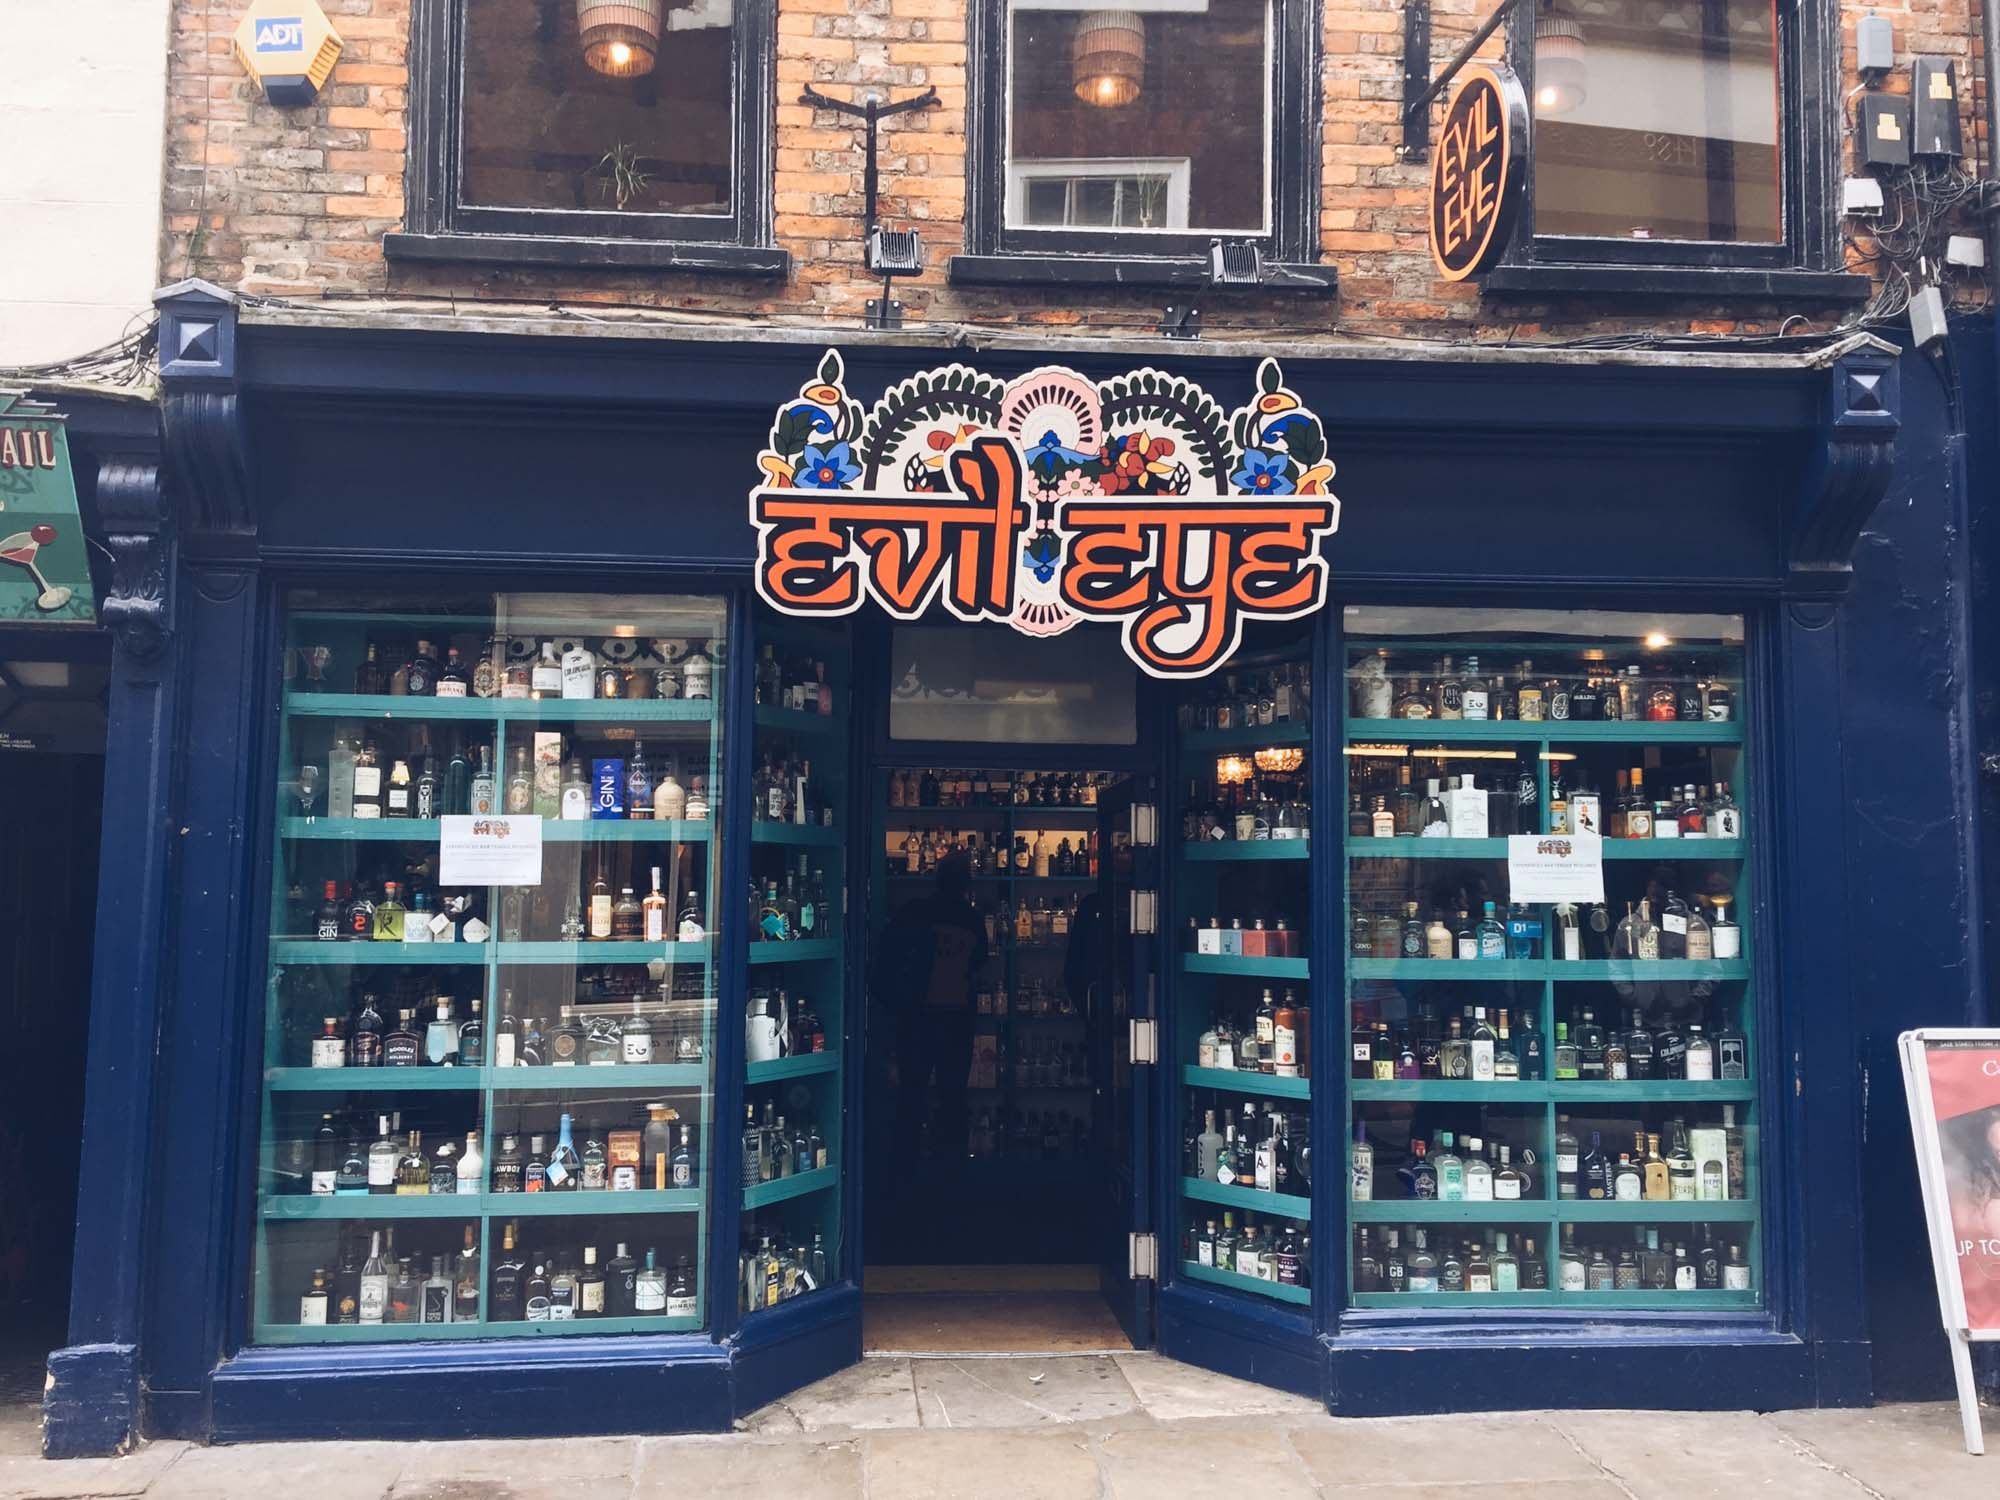 Best things to do in York - 365 pubs - Evil Eye Lounge